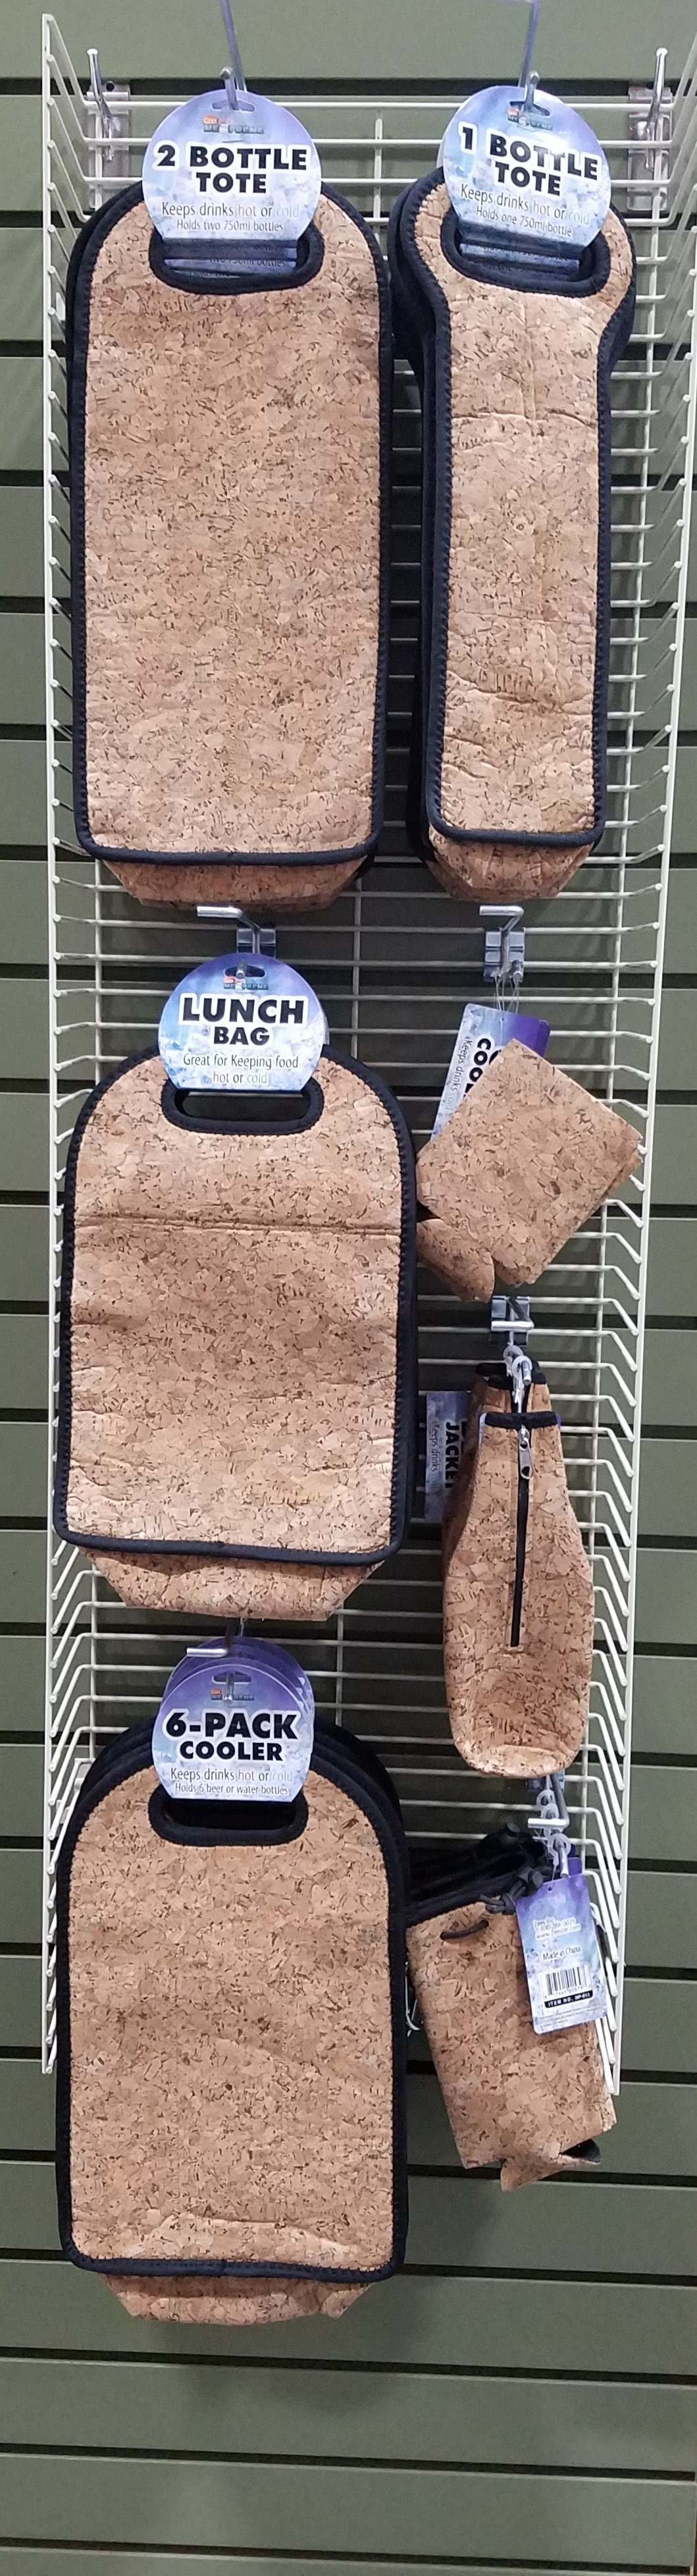 Neoprene Cork Assortmentd. Display Panel